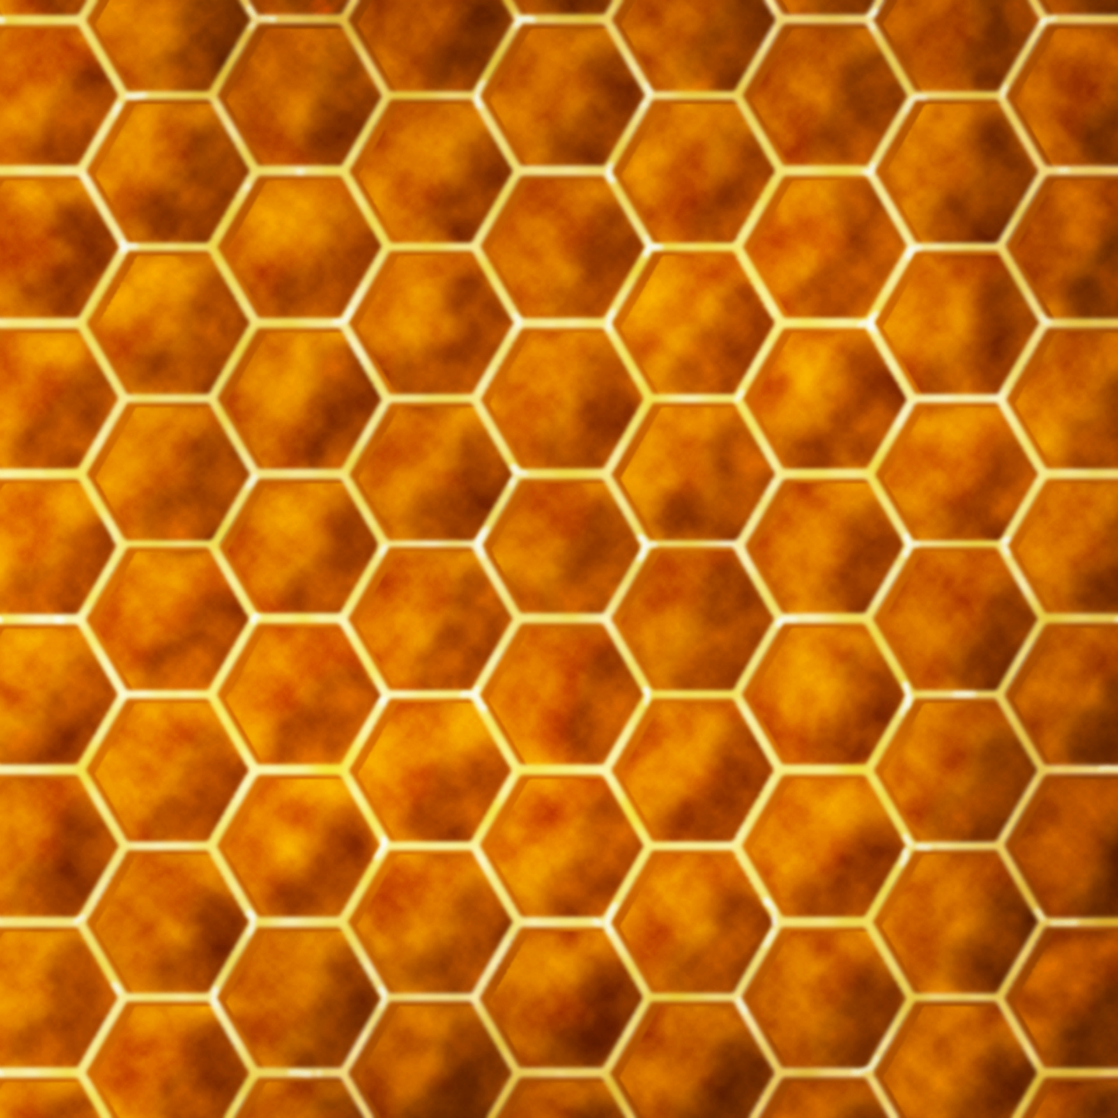 a honeycomb pattern depicting orderly cells, the opposite of cancer